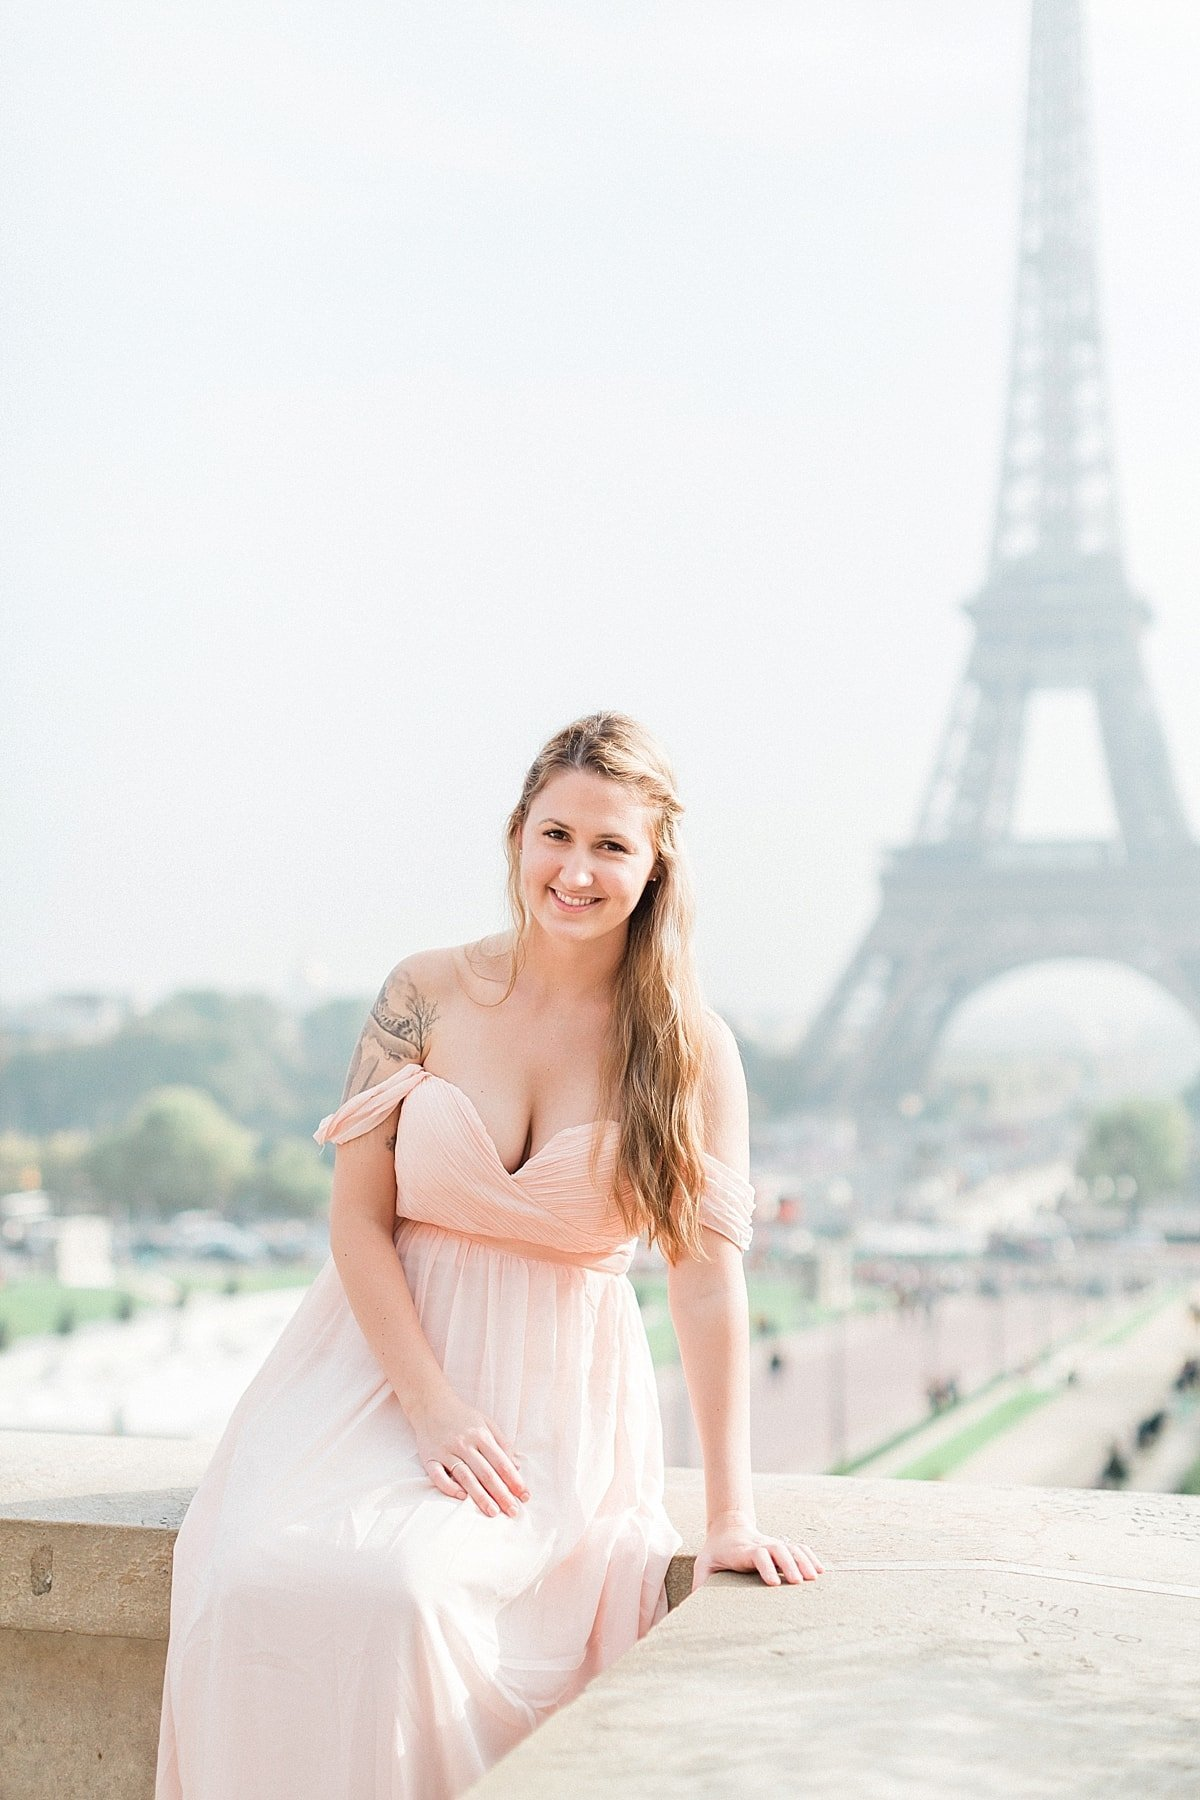 Paris France Anniversary Session photographed at the Eiffel Tower by France Destination Wedding Photographer, Alicia Yarrish Photography